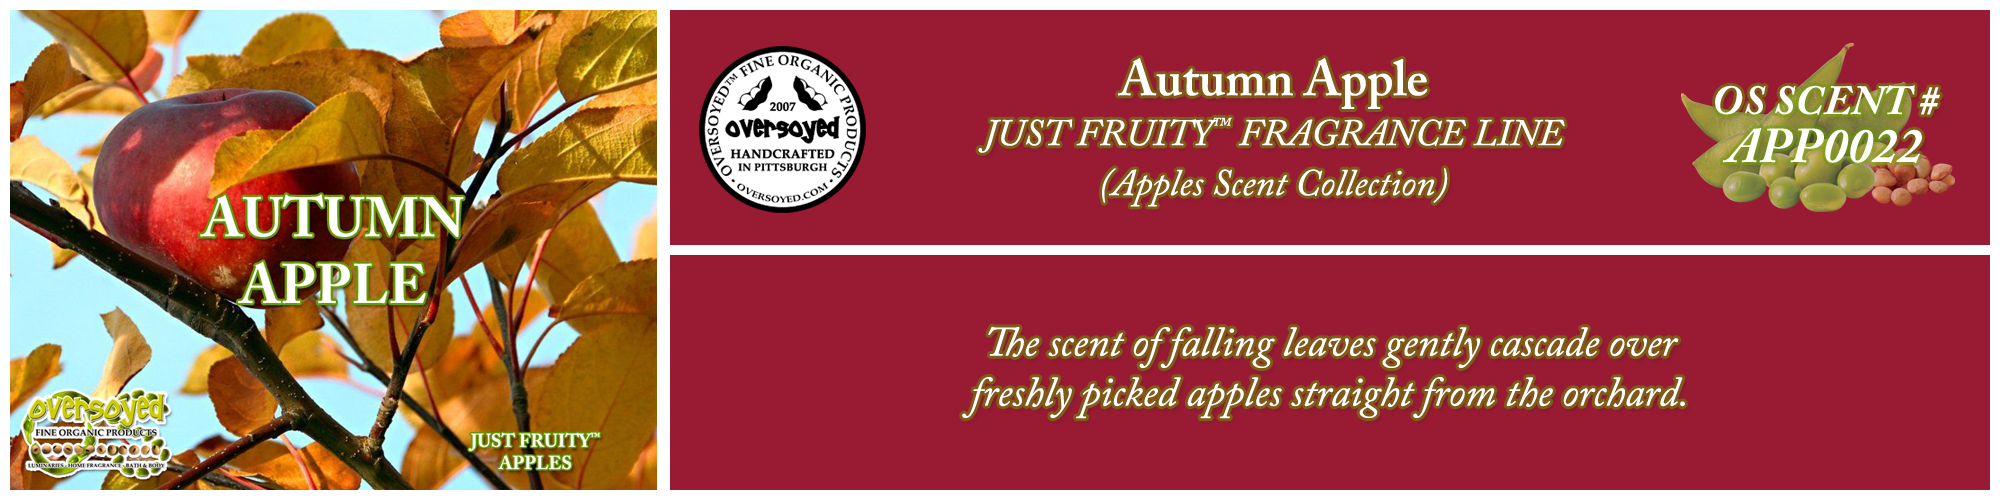 Autumn Apple Handcrafted Products Collection